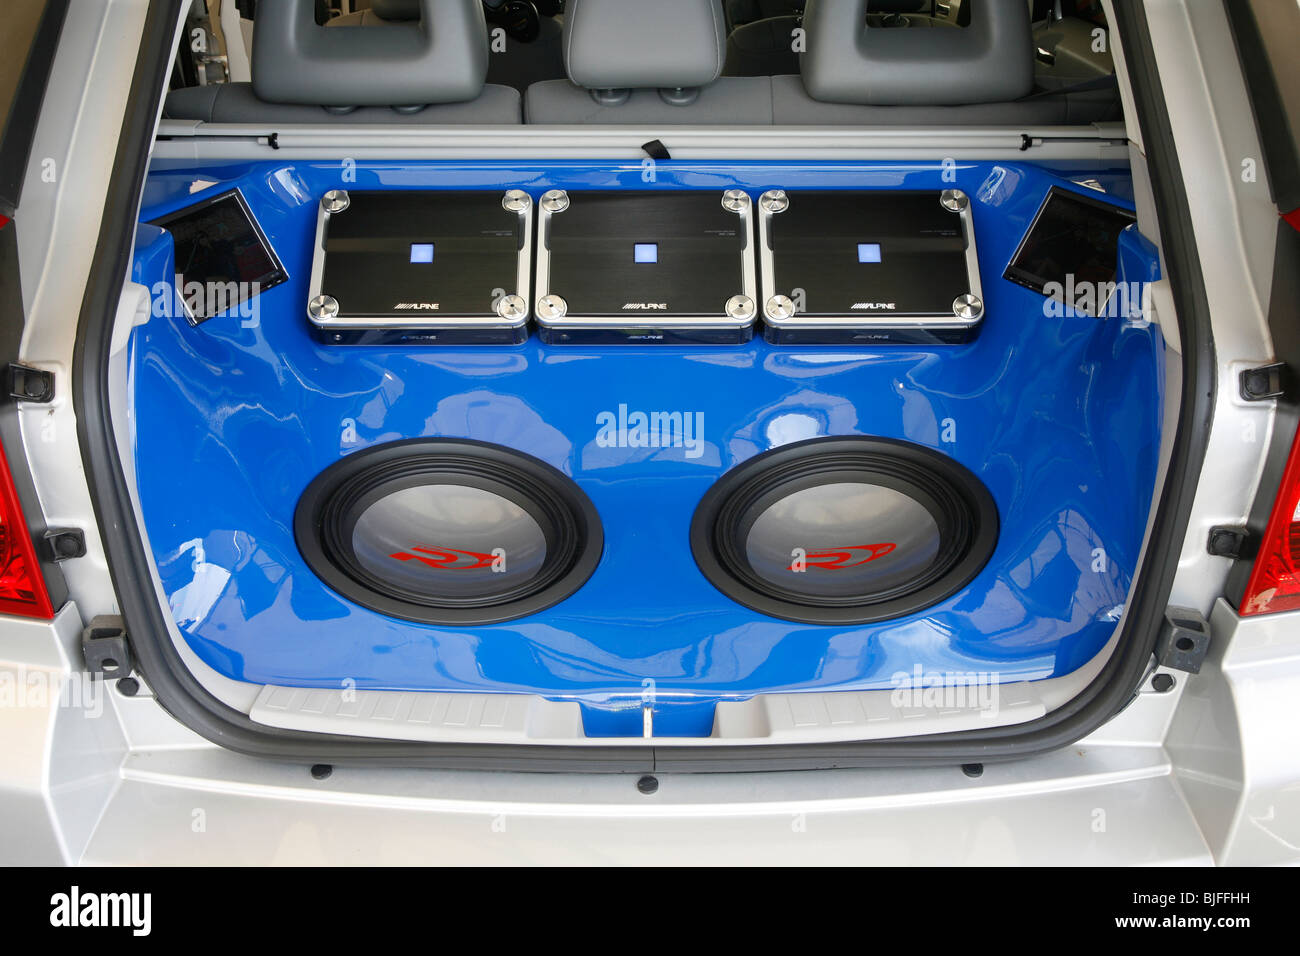 Custom Vehicle Speakers : Custom car audio system in the boot of a stock photo